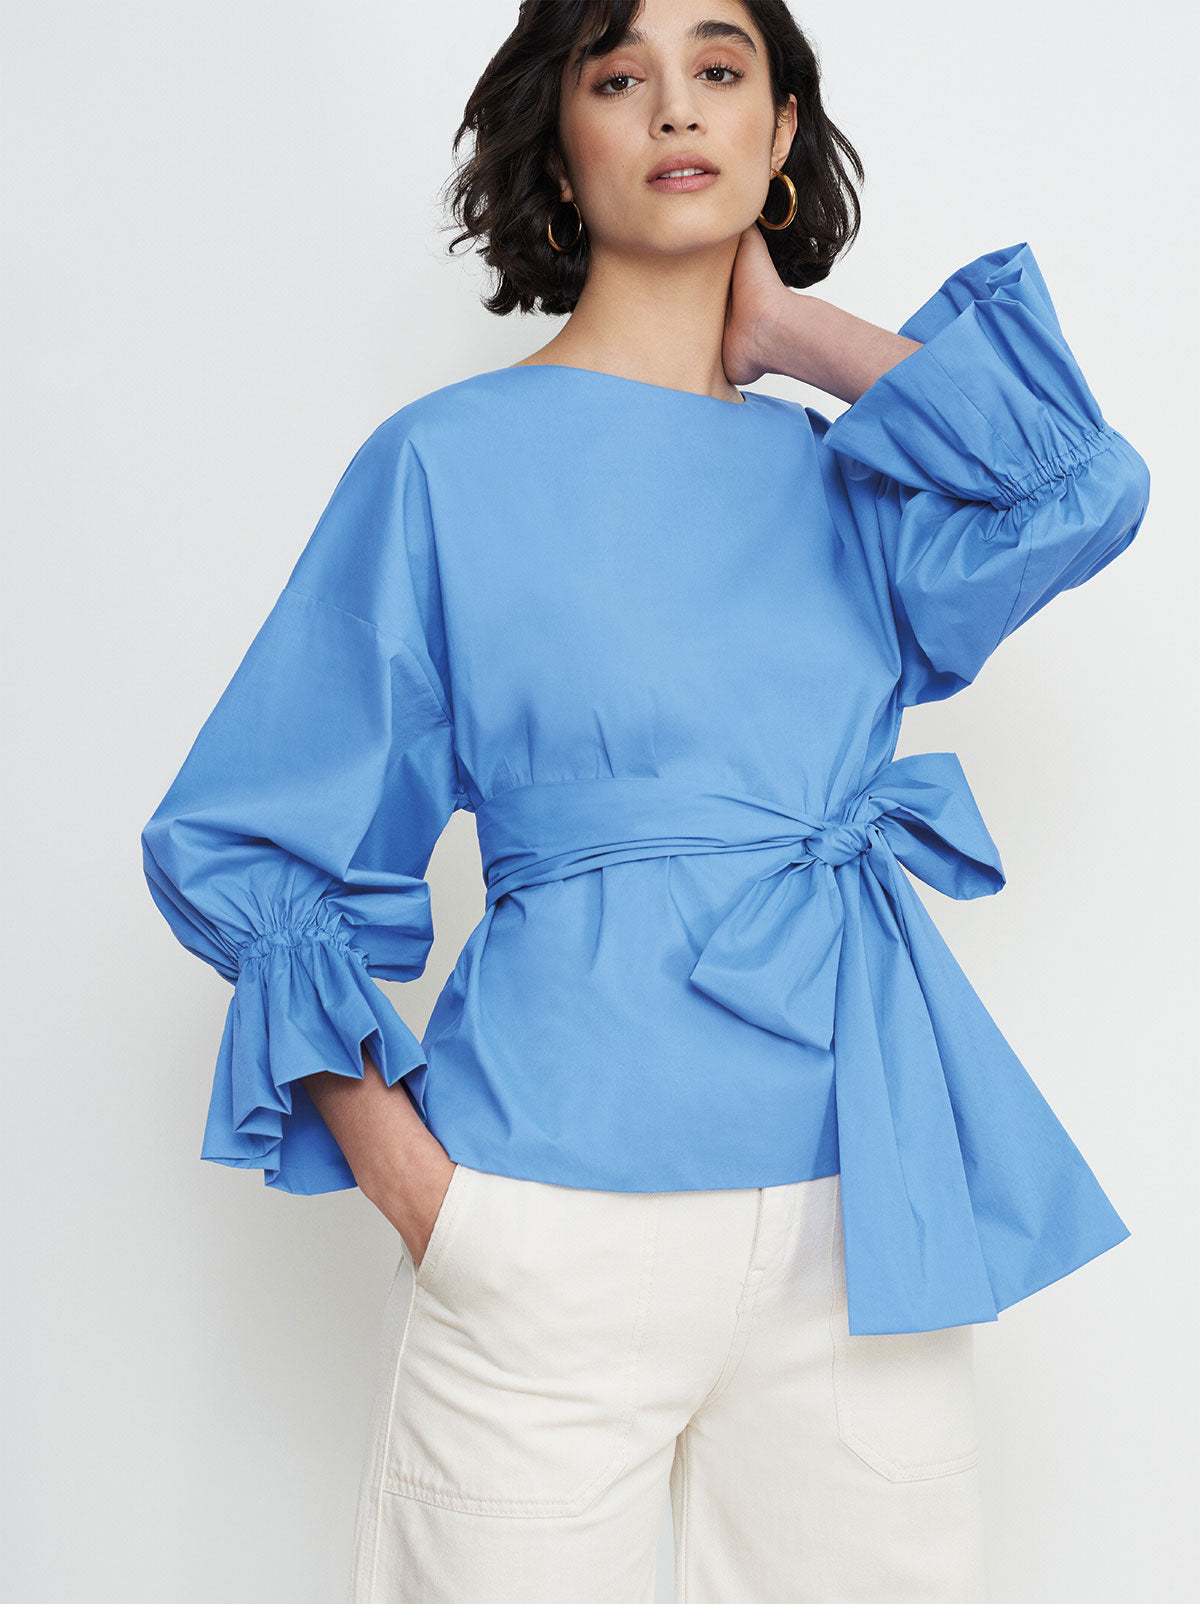 Tessa Blue Bubble Oversized Sleeve Shirt by KITRI Studio